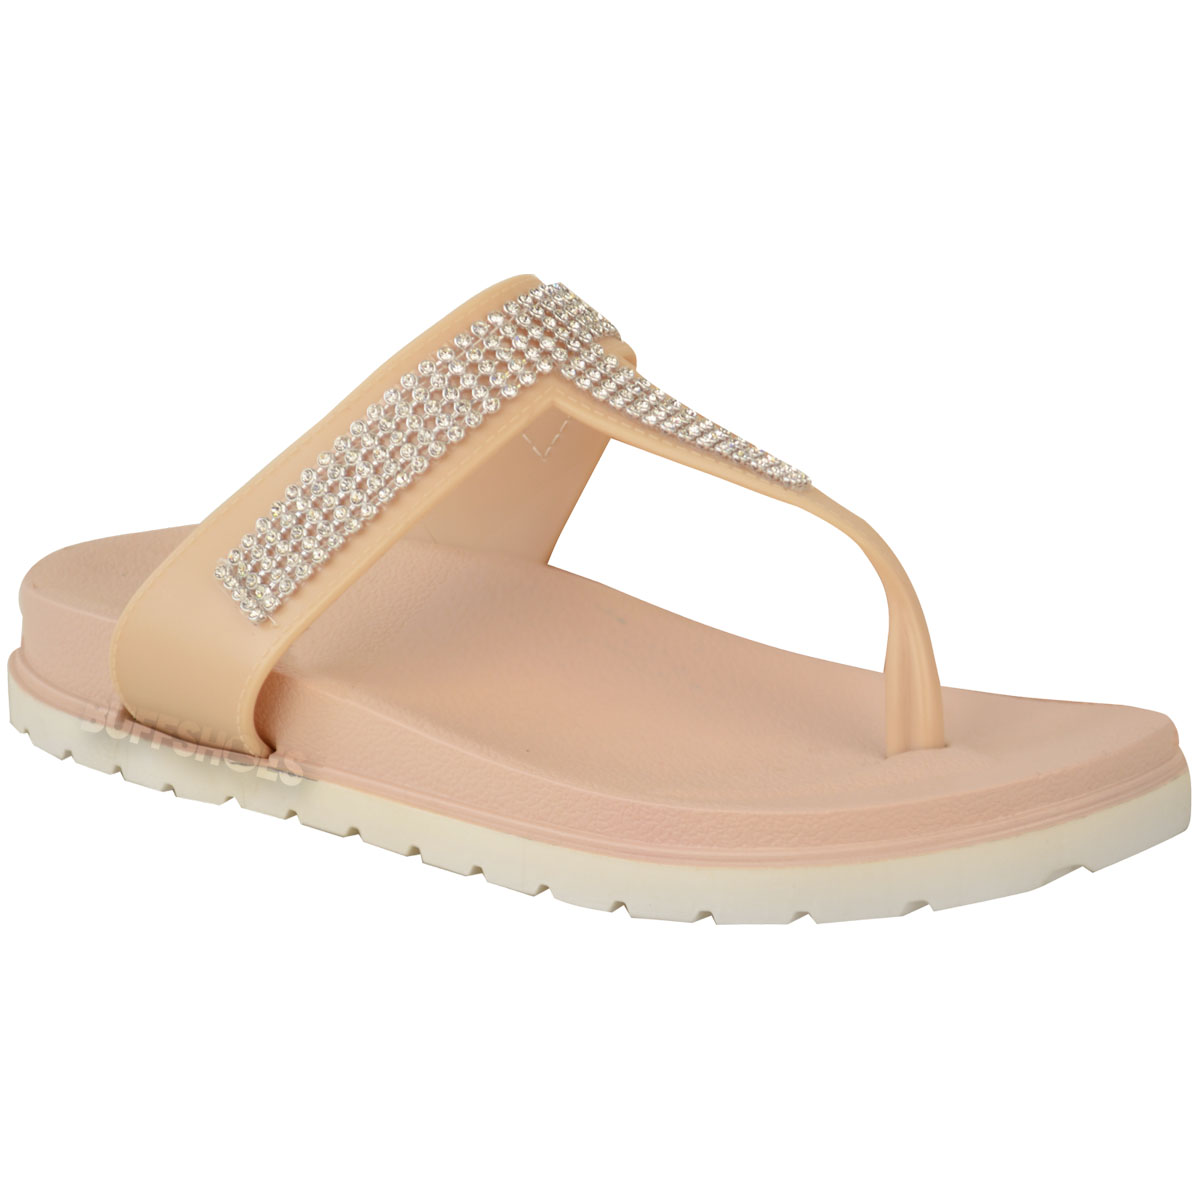 Womens-Ladies-Summer-Jelly-Sandals-Diamante-Wedge-Cushioned-Comfort-Shoes-Size thumbnail 9